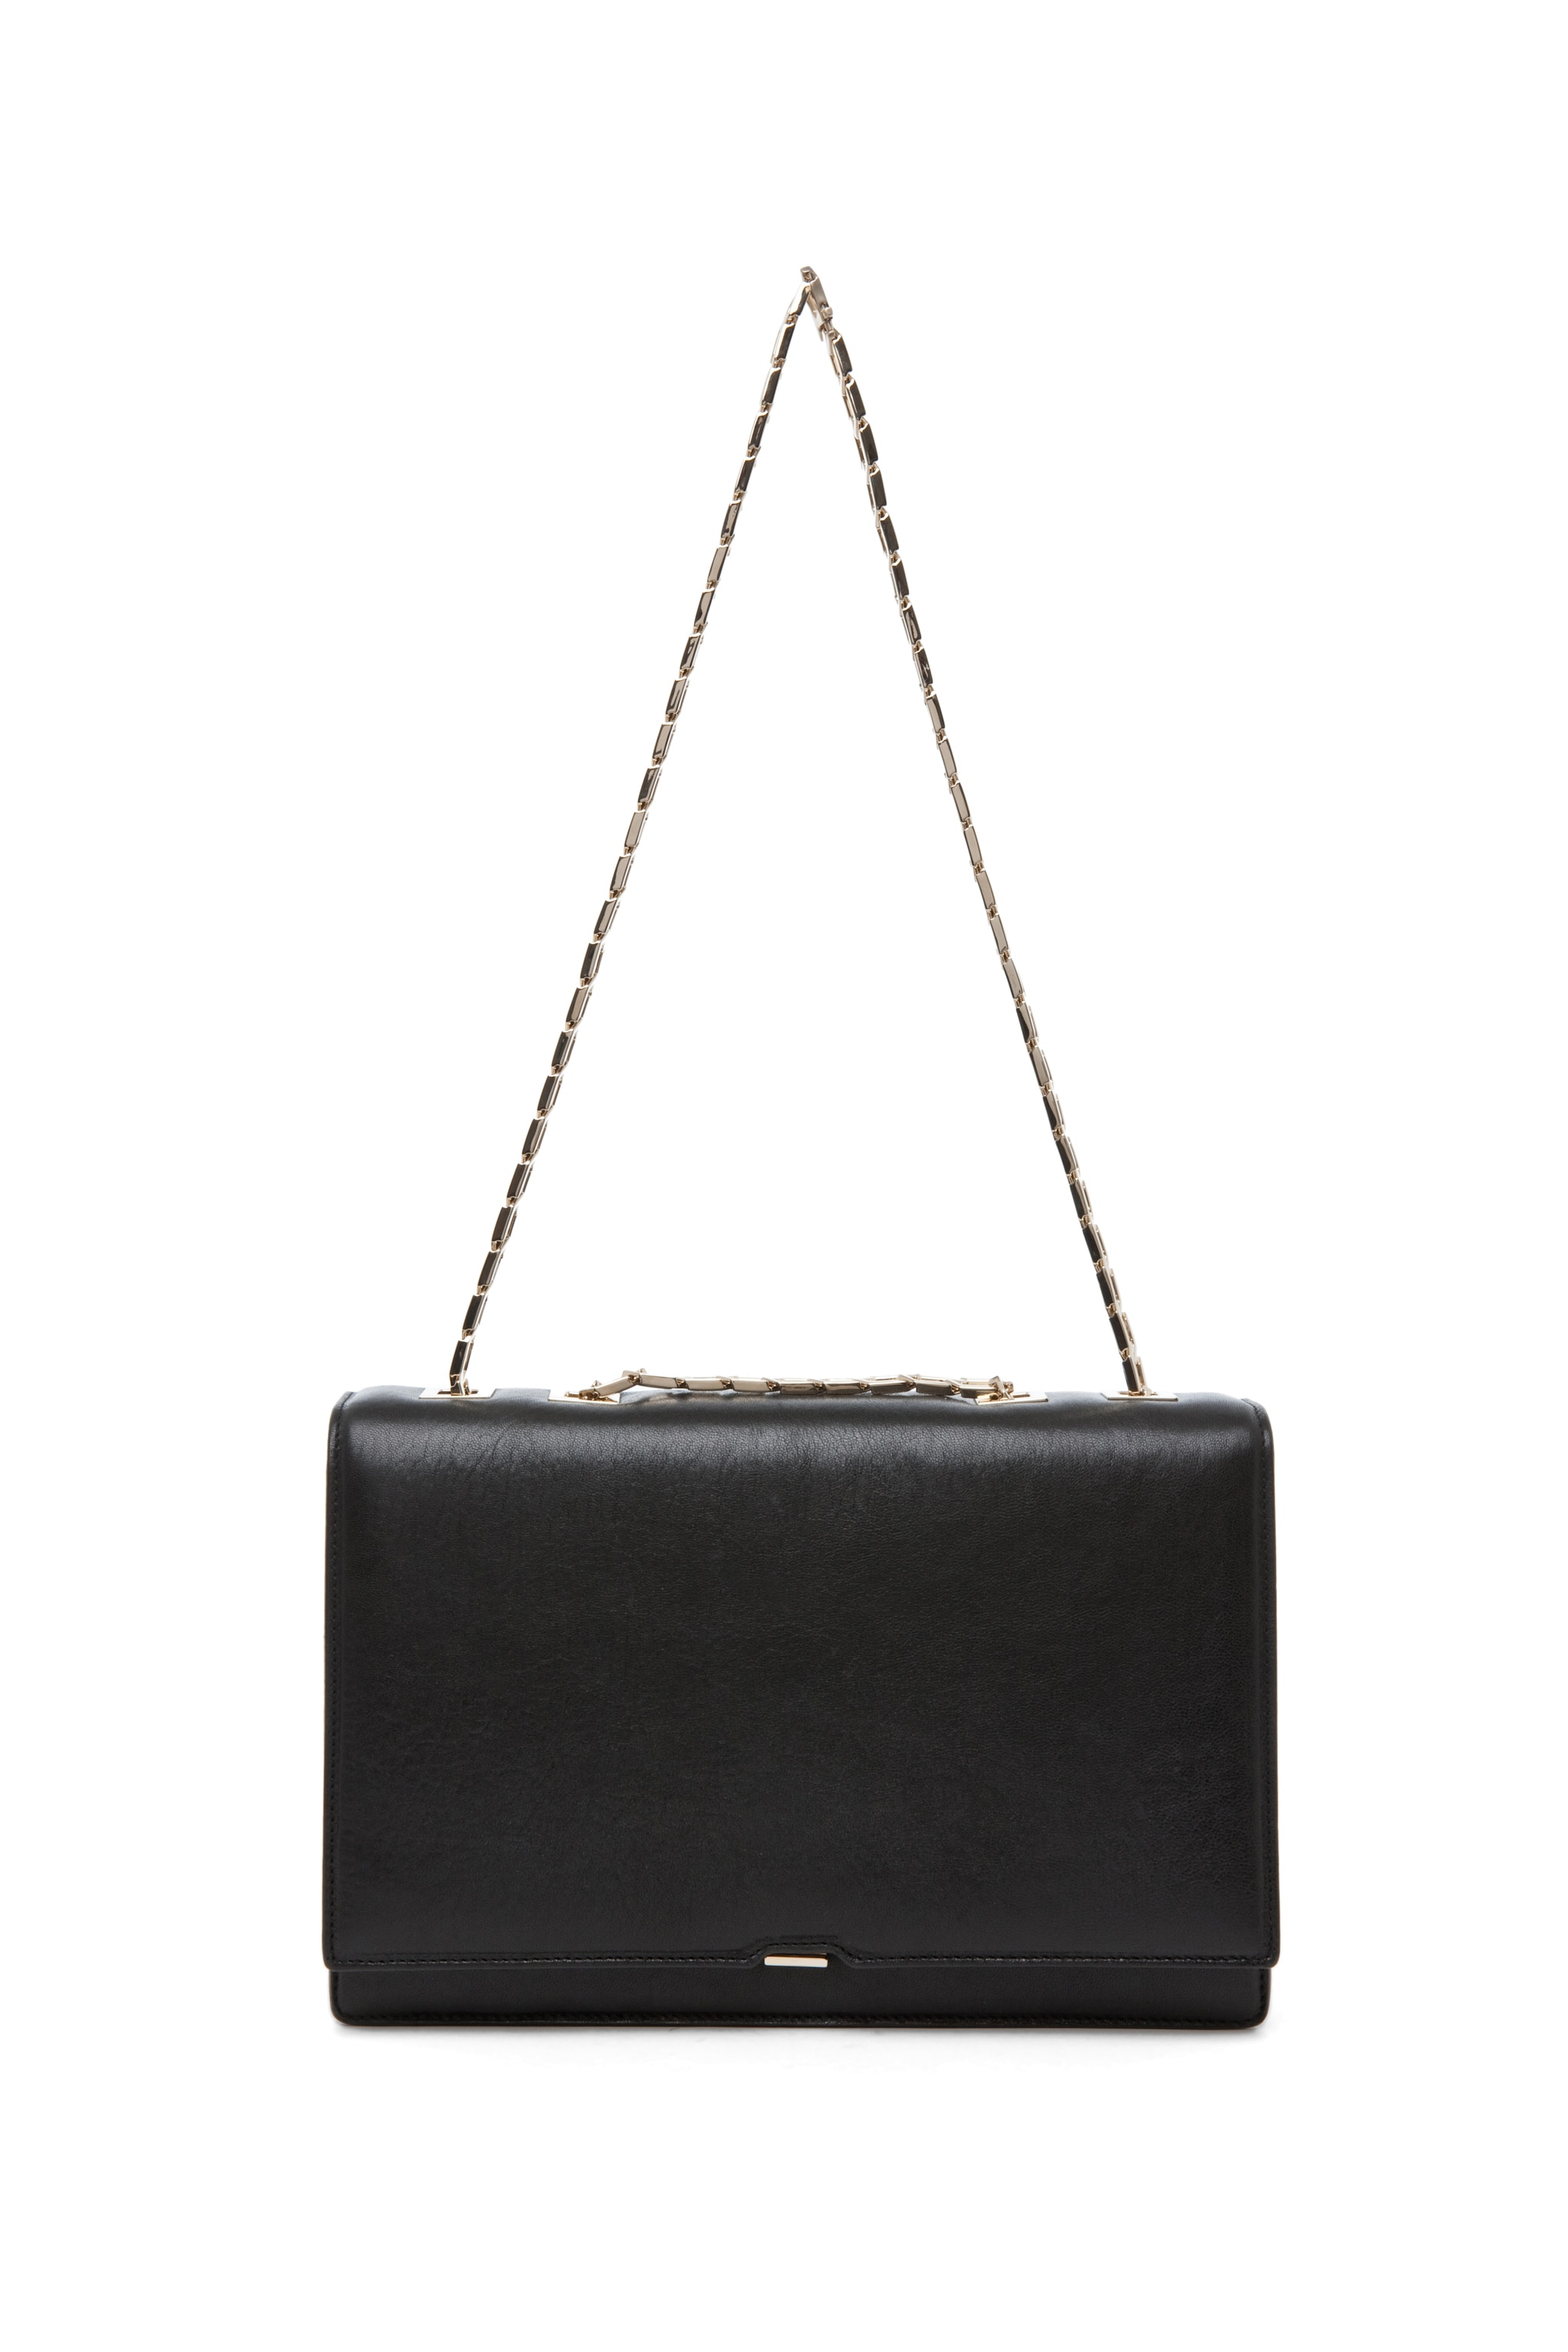 Image 5 of Victoria Beckham Hexagonal Chain Bag in Black